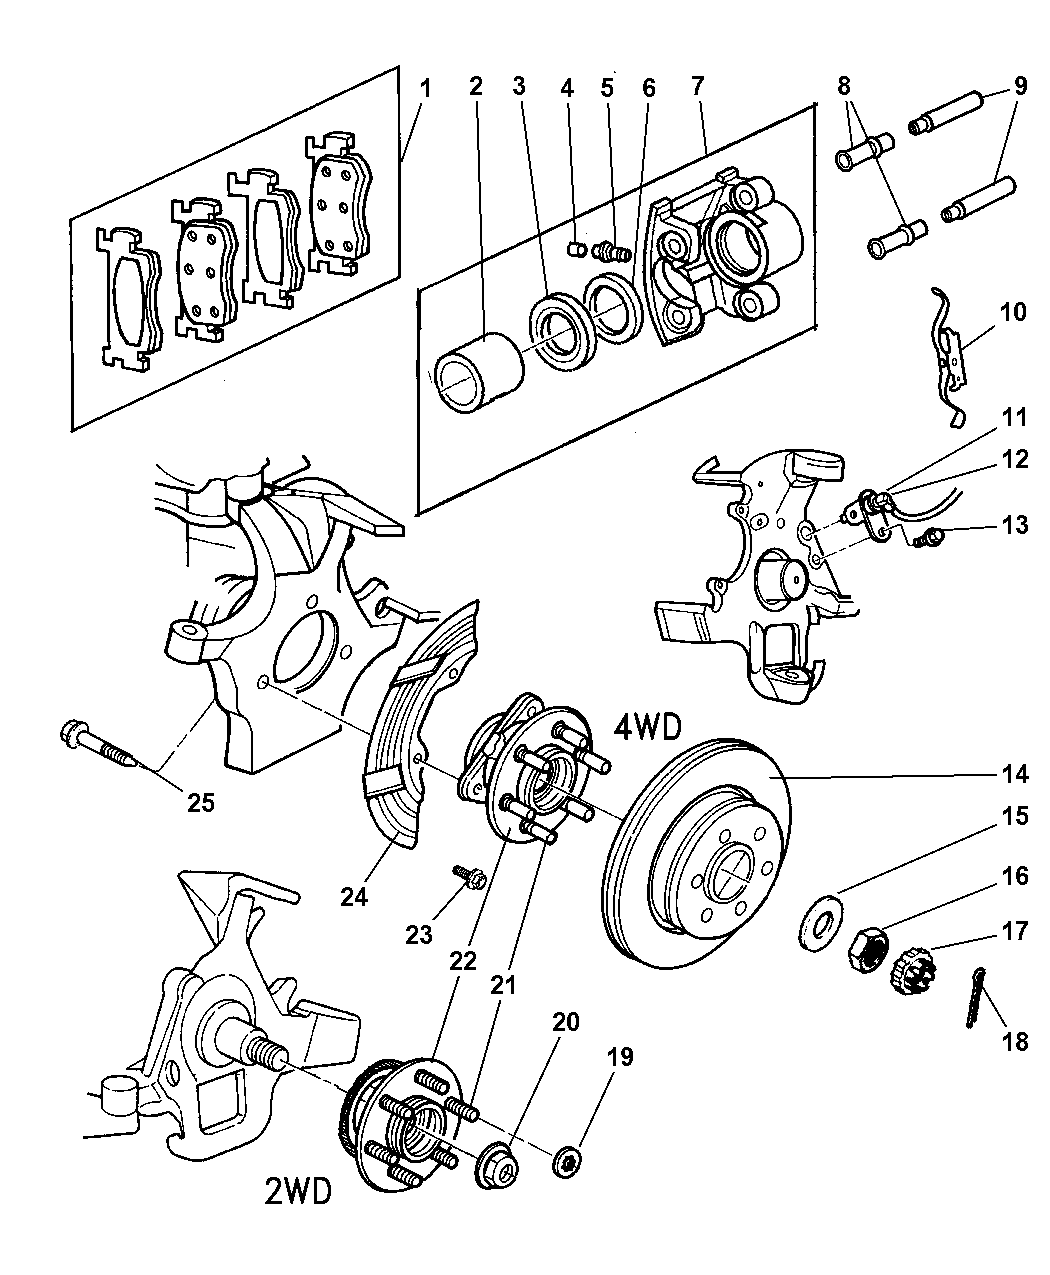 Wiring Diagram: 34 2001 Dodge Dakota Parts Diagram